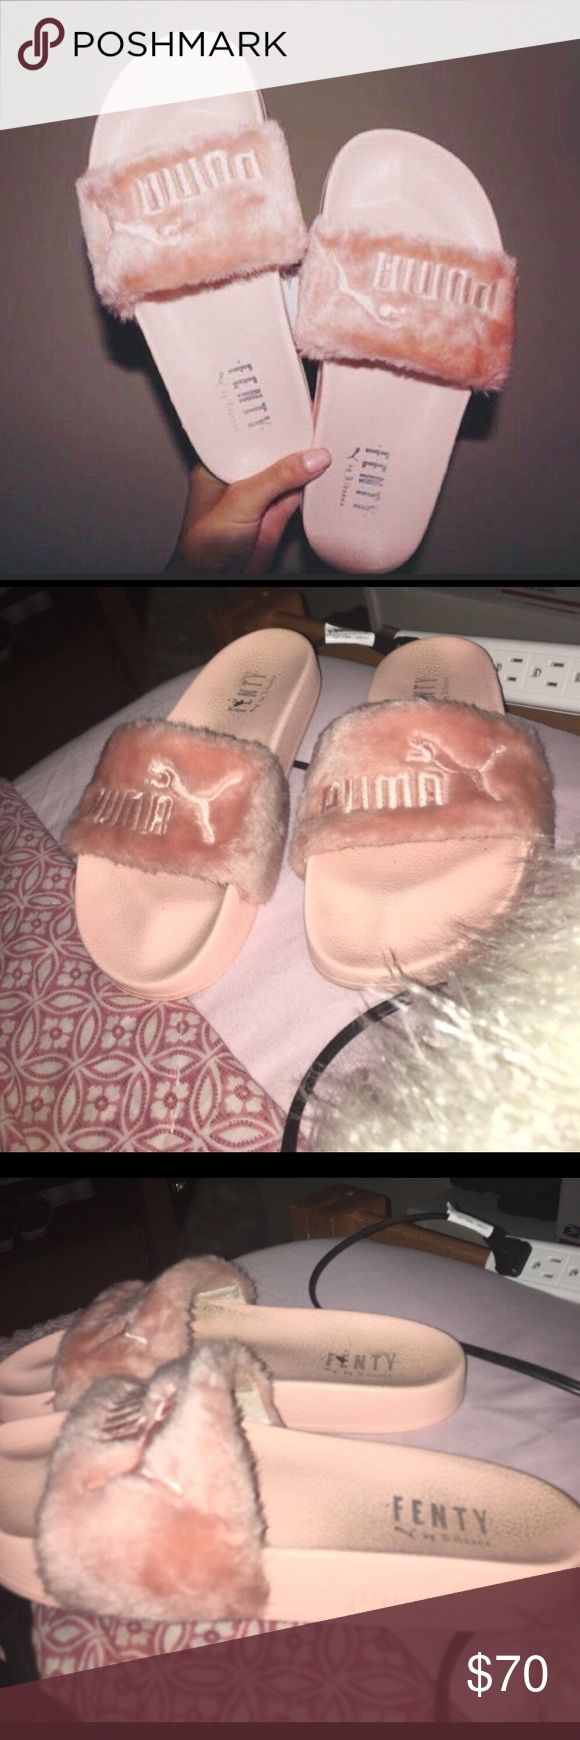 Authentic Fenty Puma Slides Authentic pink Fenty Puma slides. Rihanna. Retail is $120 +. Used but in great shape. Back heel is worn a little. Women's size 9. Fits perfectly! Make an offer :) Puma Shoes Sandals